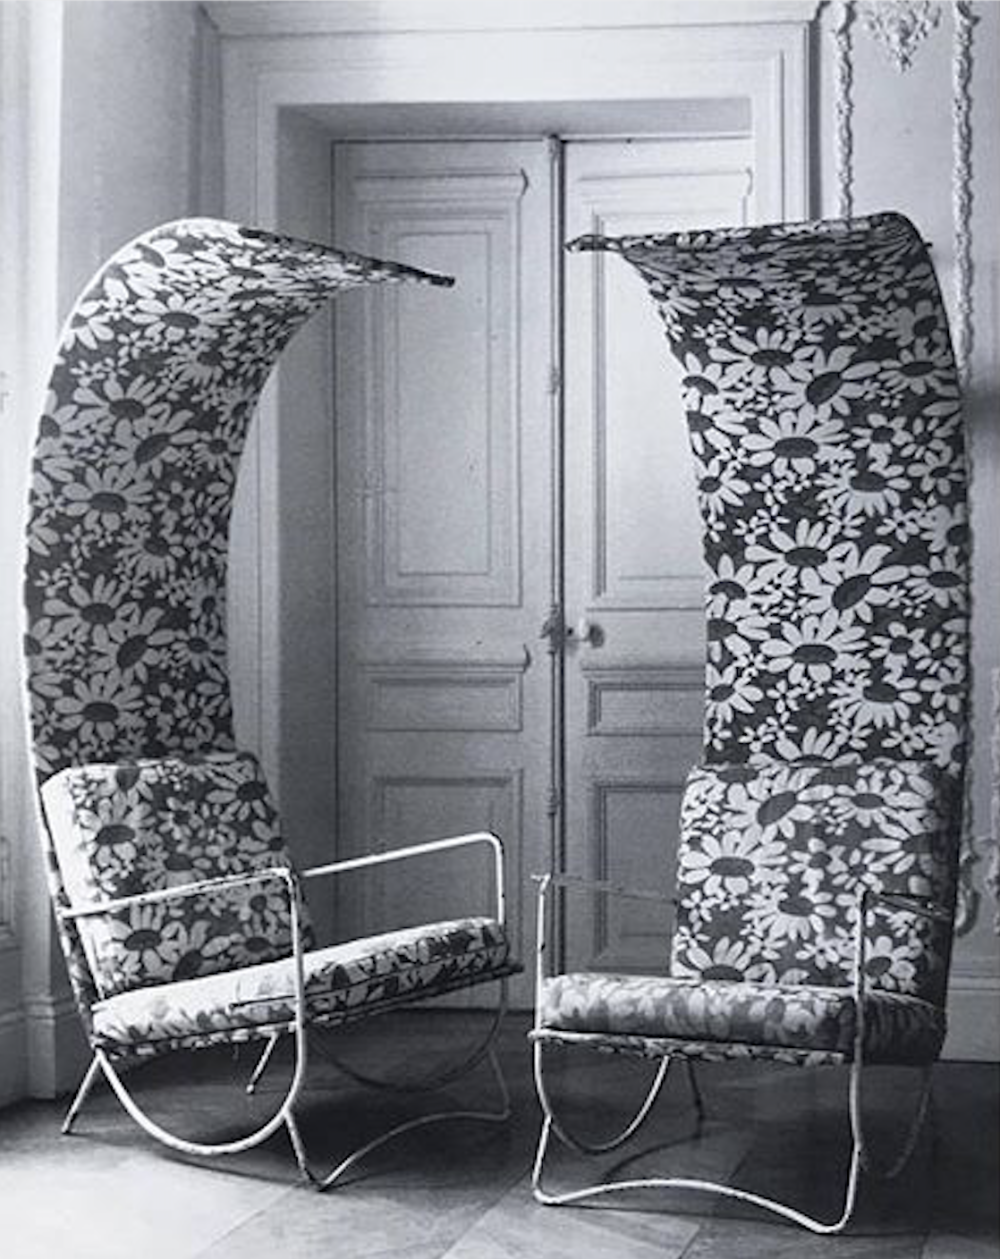 Jean roye  re  chairs  1959